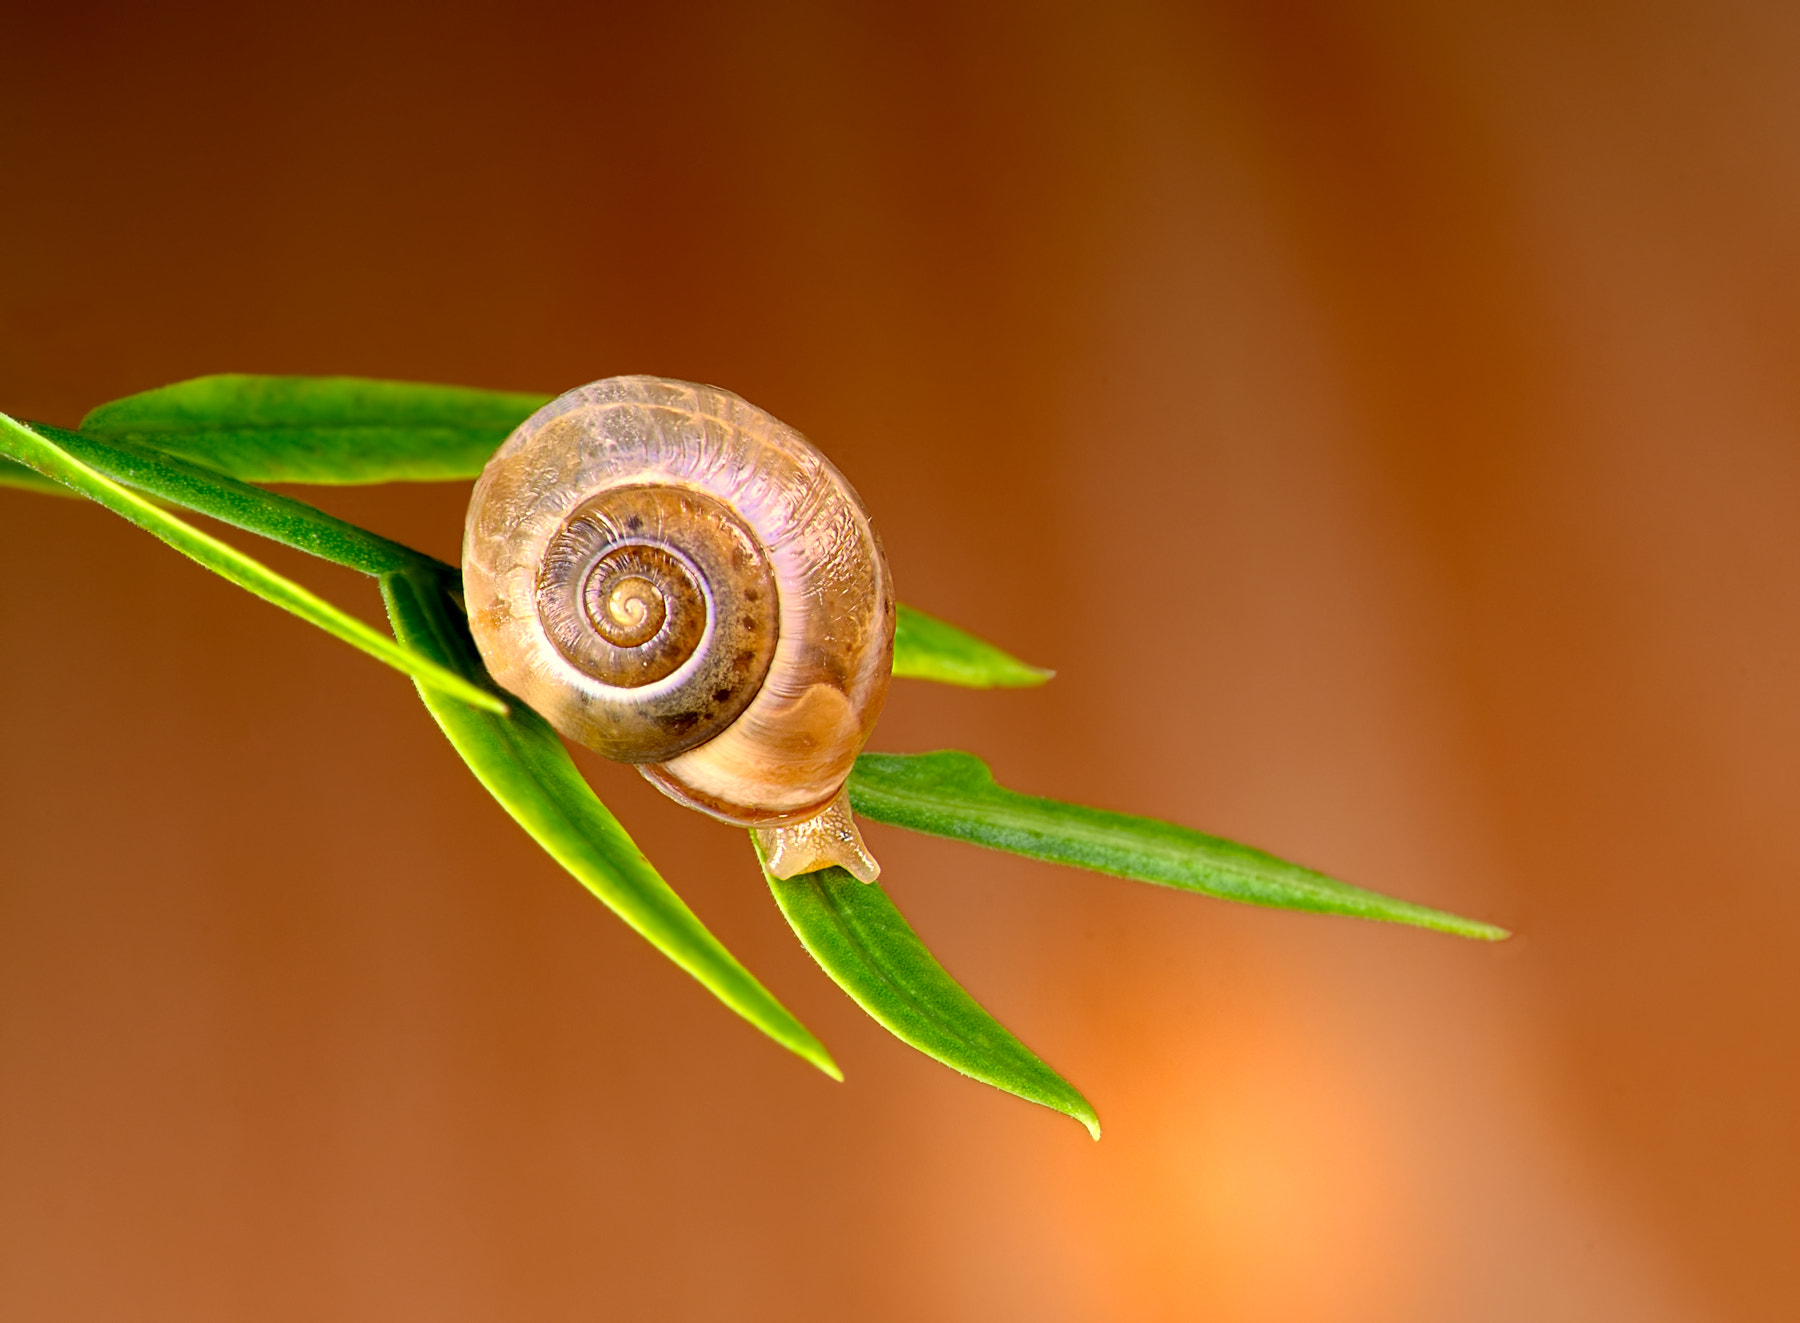 Photograph Shy Snail by Charles Charalambous on 500px